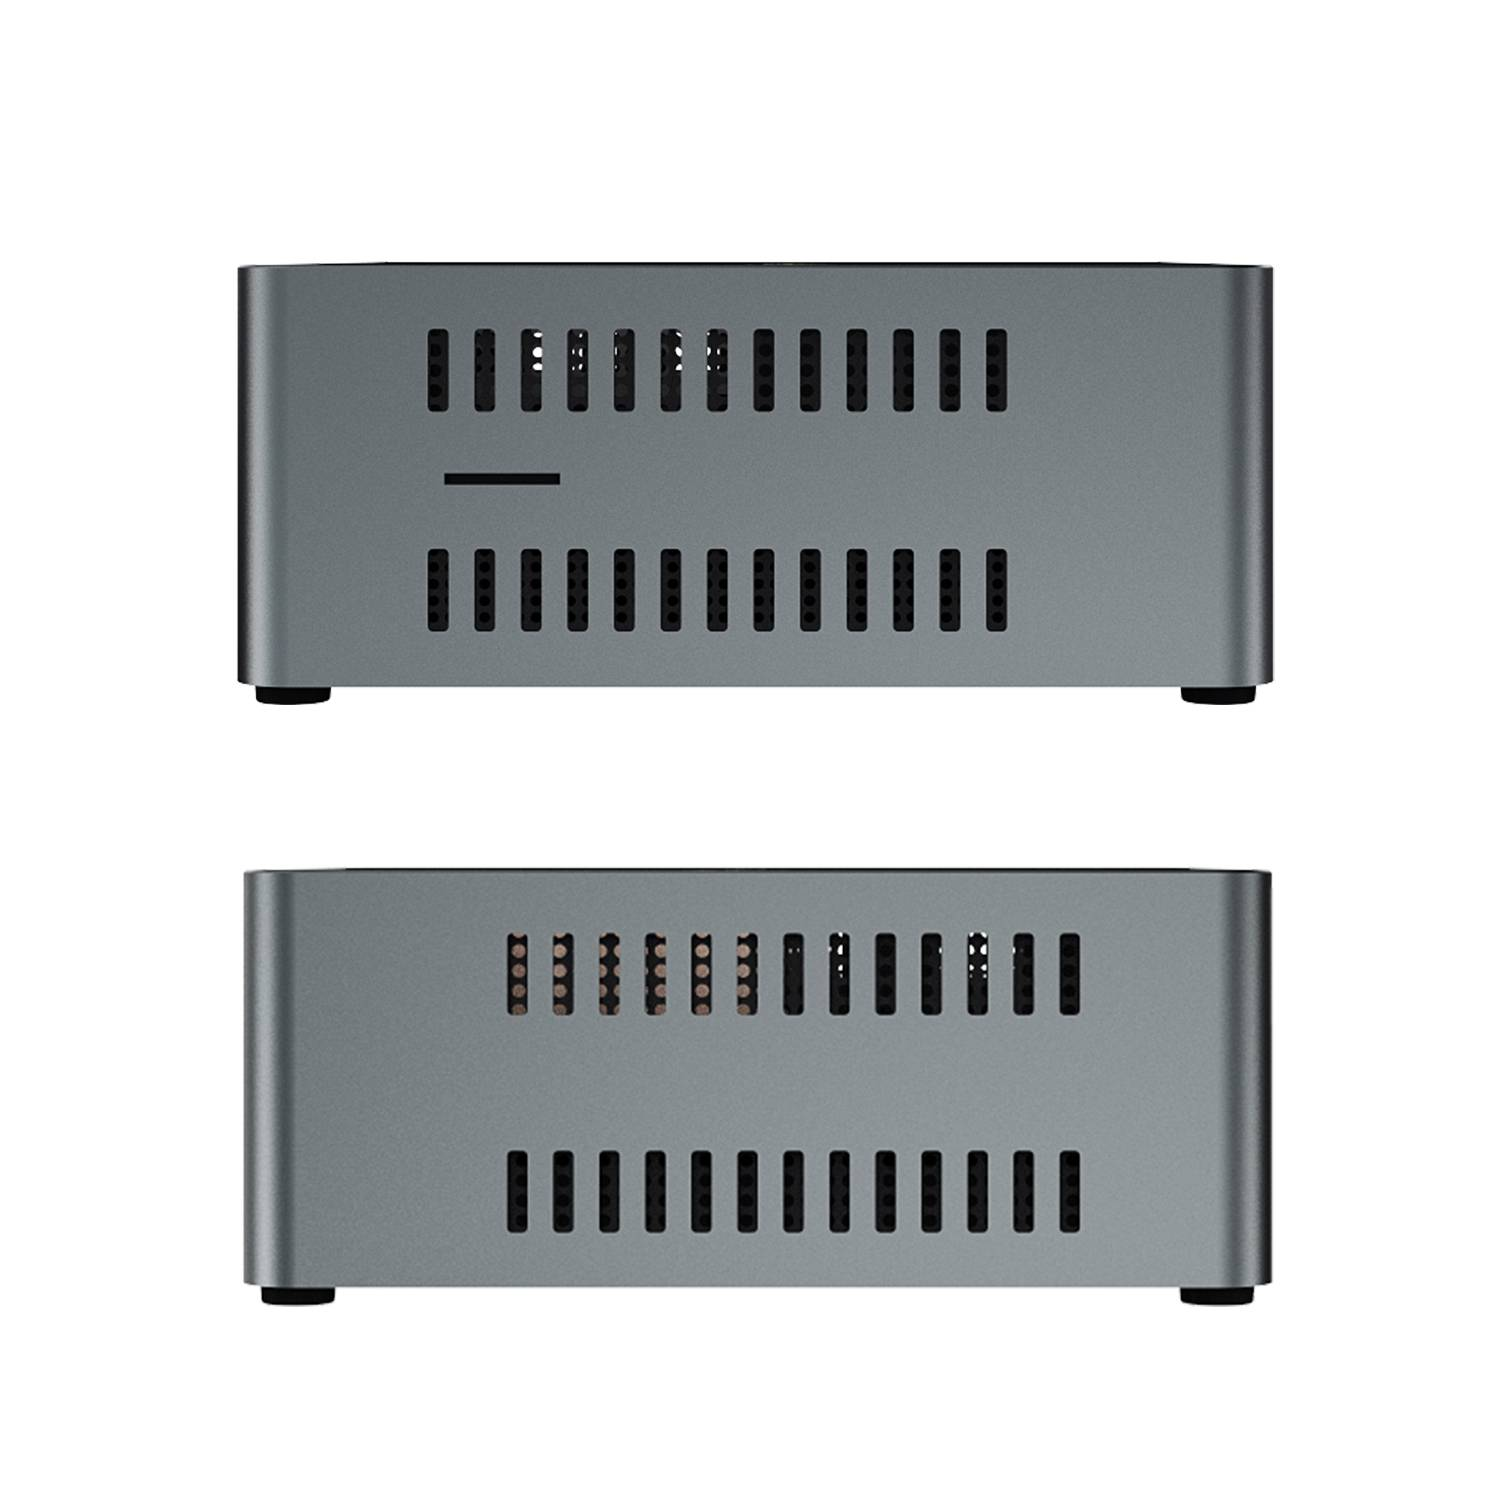 Beelink J45 Windows 10 Mini Computer for Home or Office - Side View showing Air Vents and MicroSD/TF Card Slot